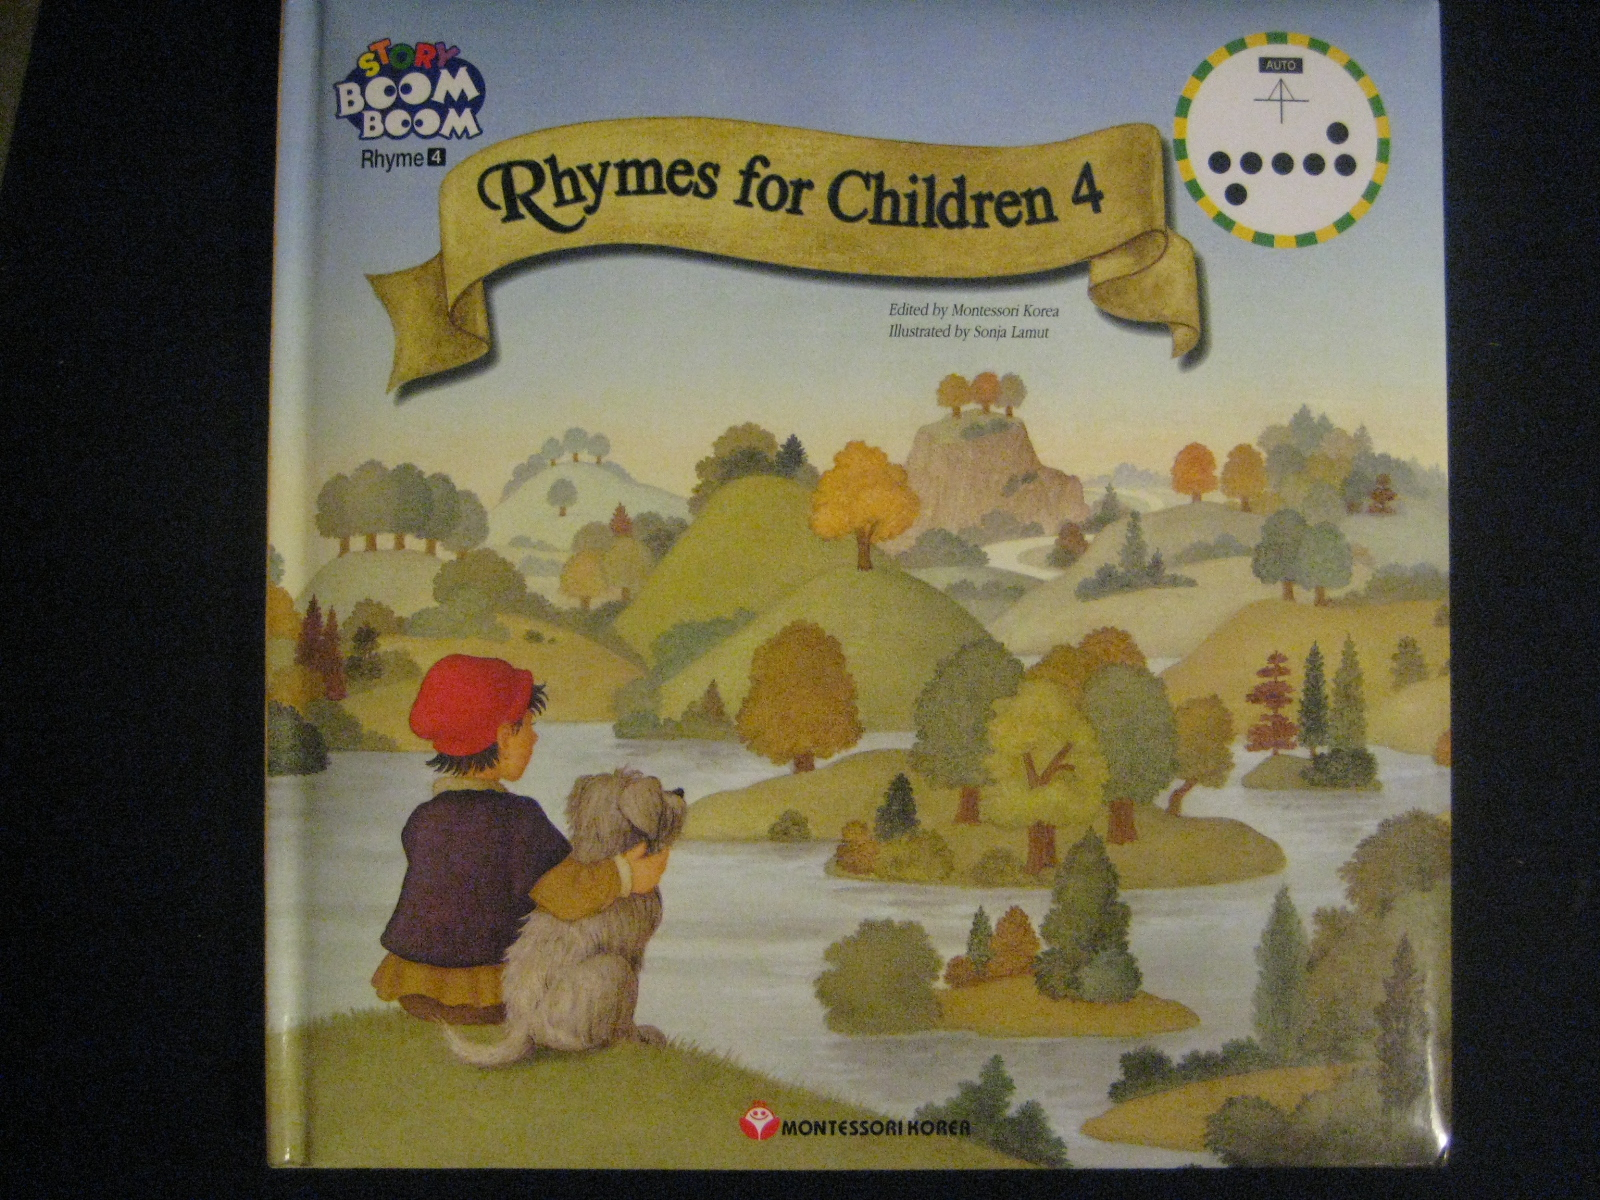 Rhymes for Children 4